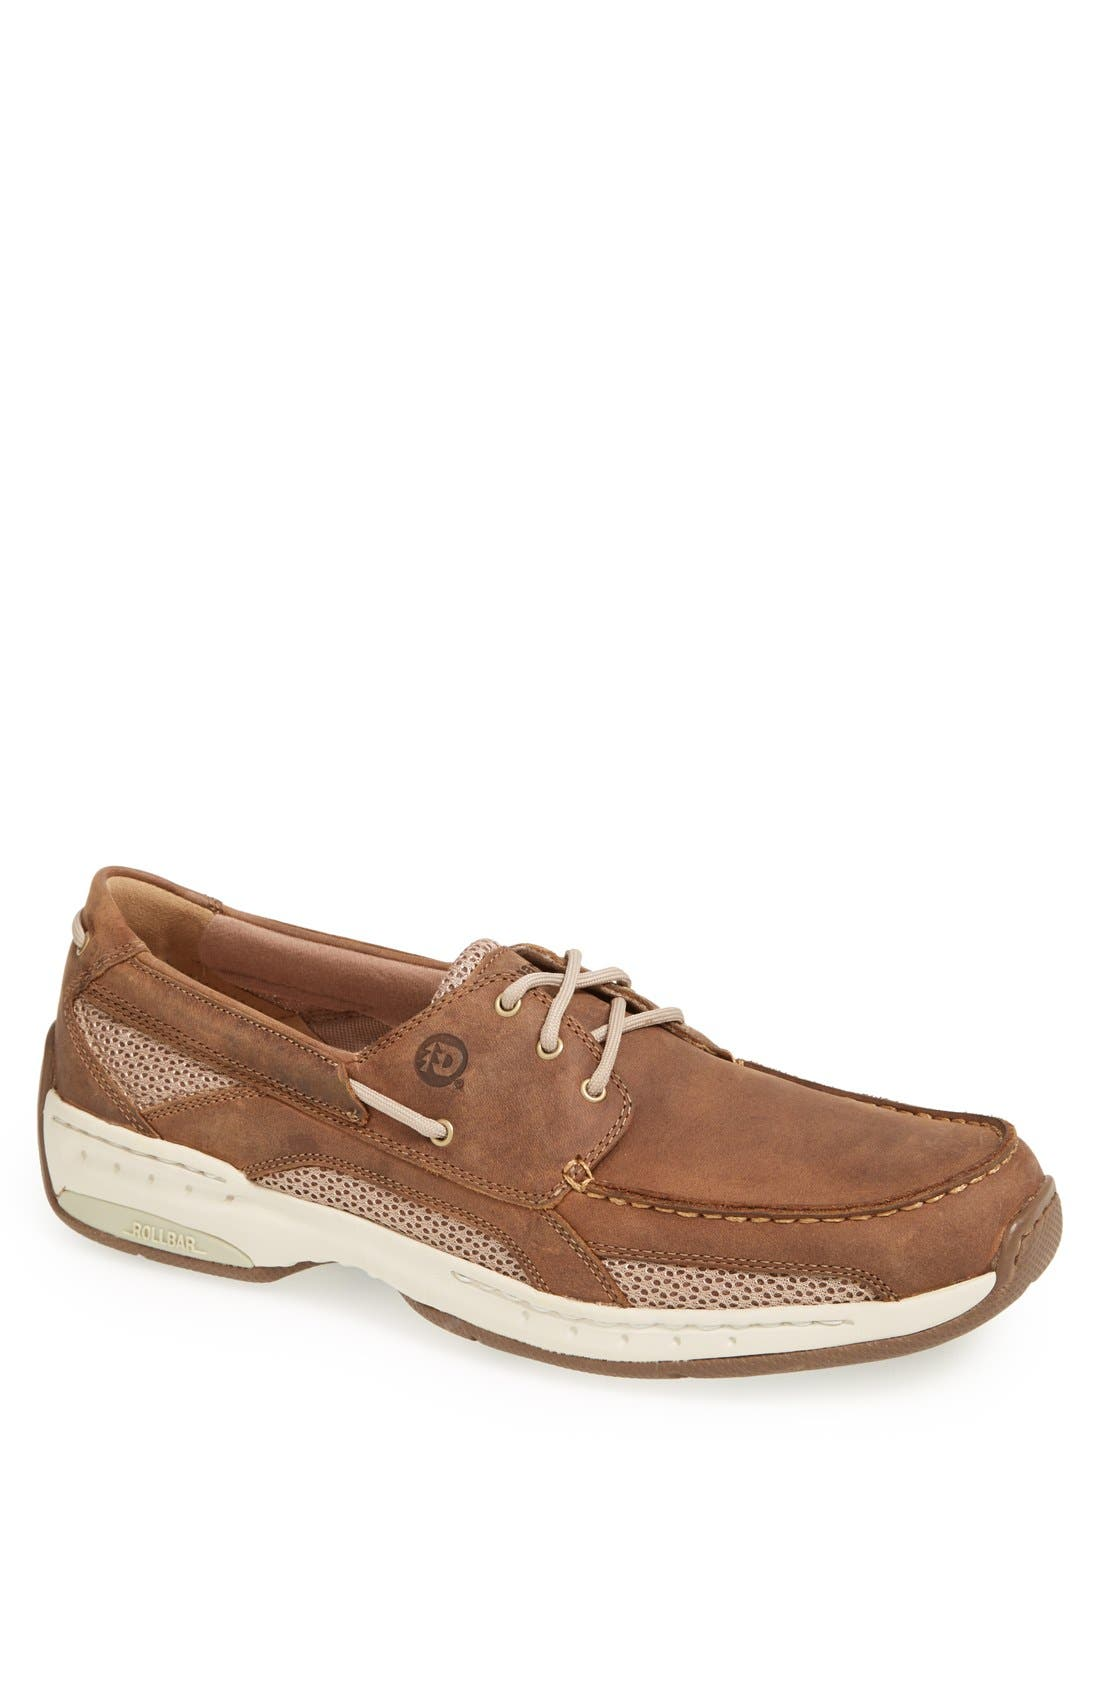 'Captain' Boat Shoe,                             Main thumbnail 1, color,                             TAN